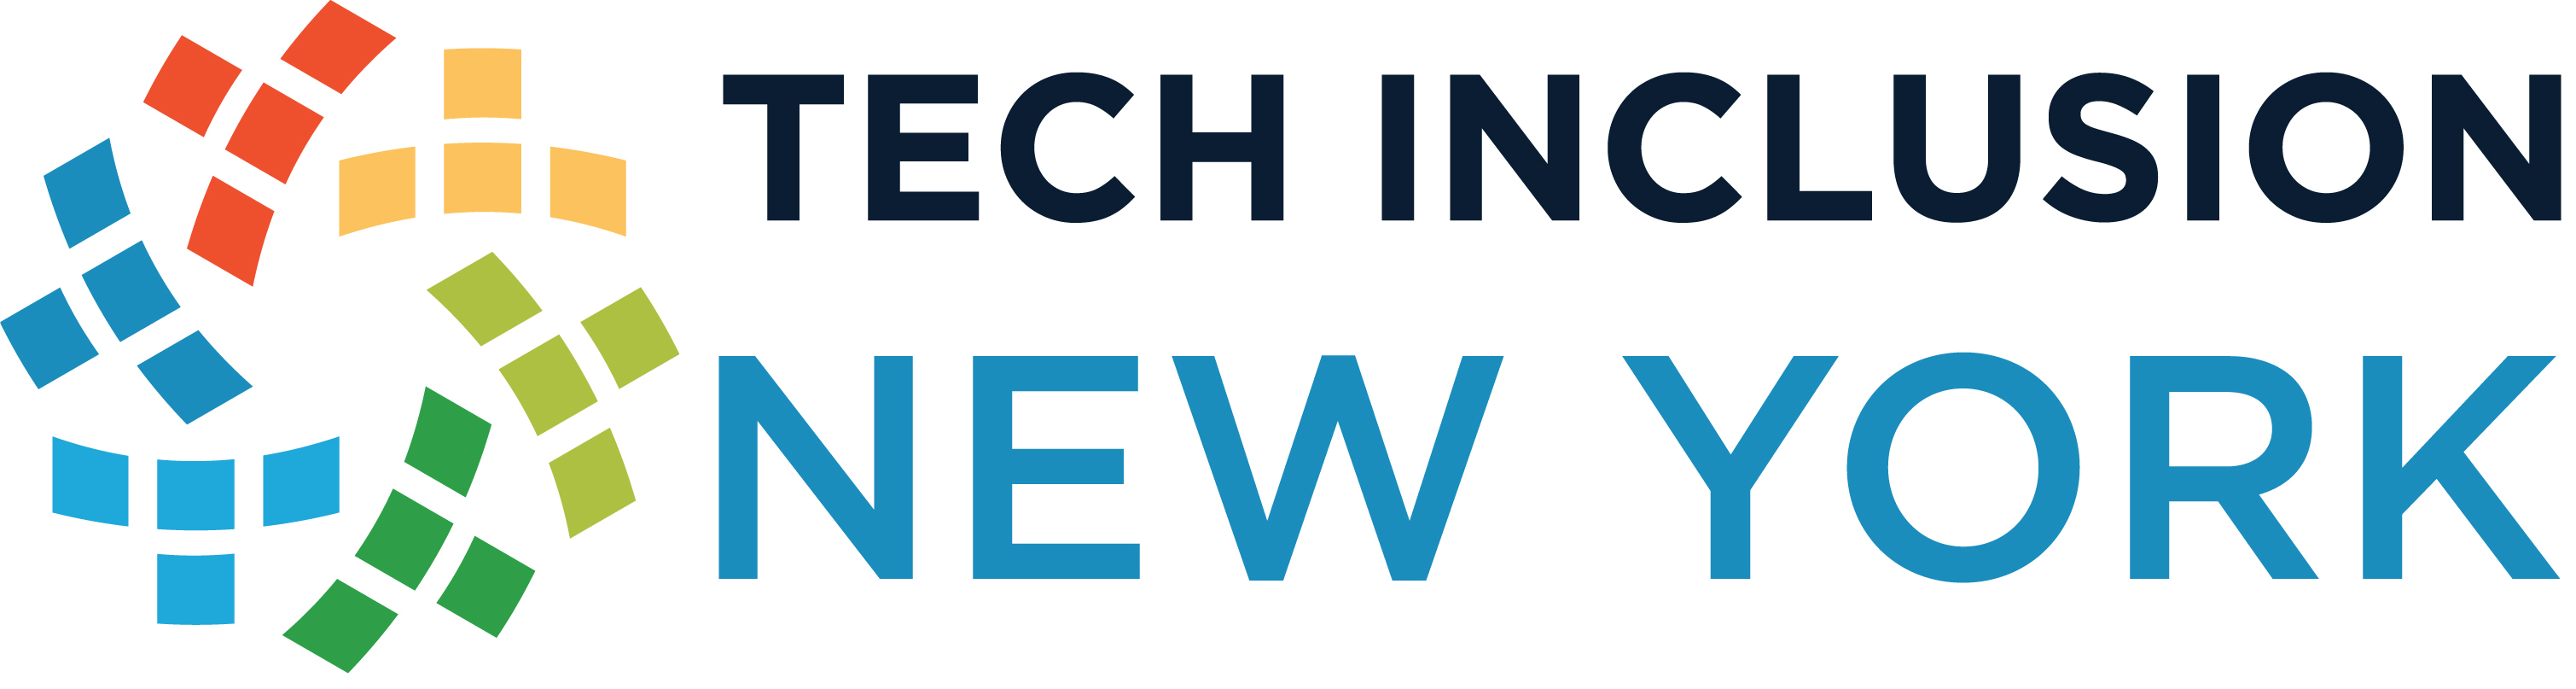 What s to learn from tech inclusion new york chief for Innovation consulting firms nyc